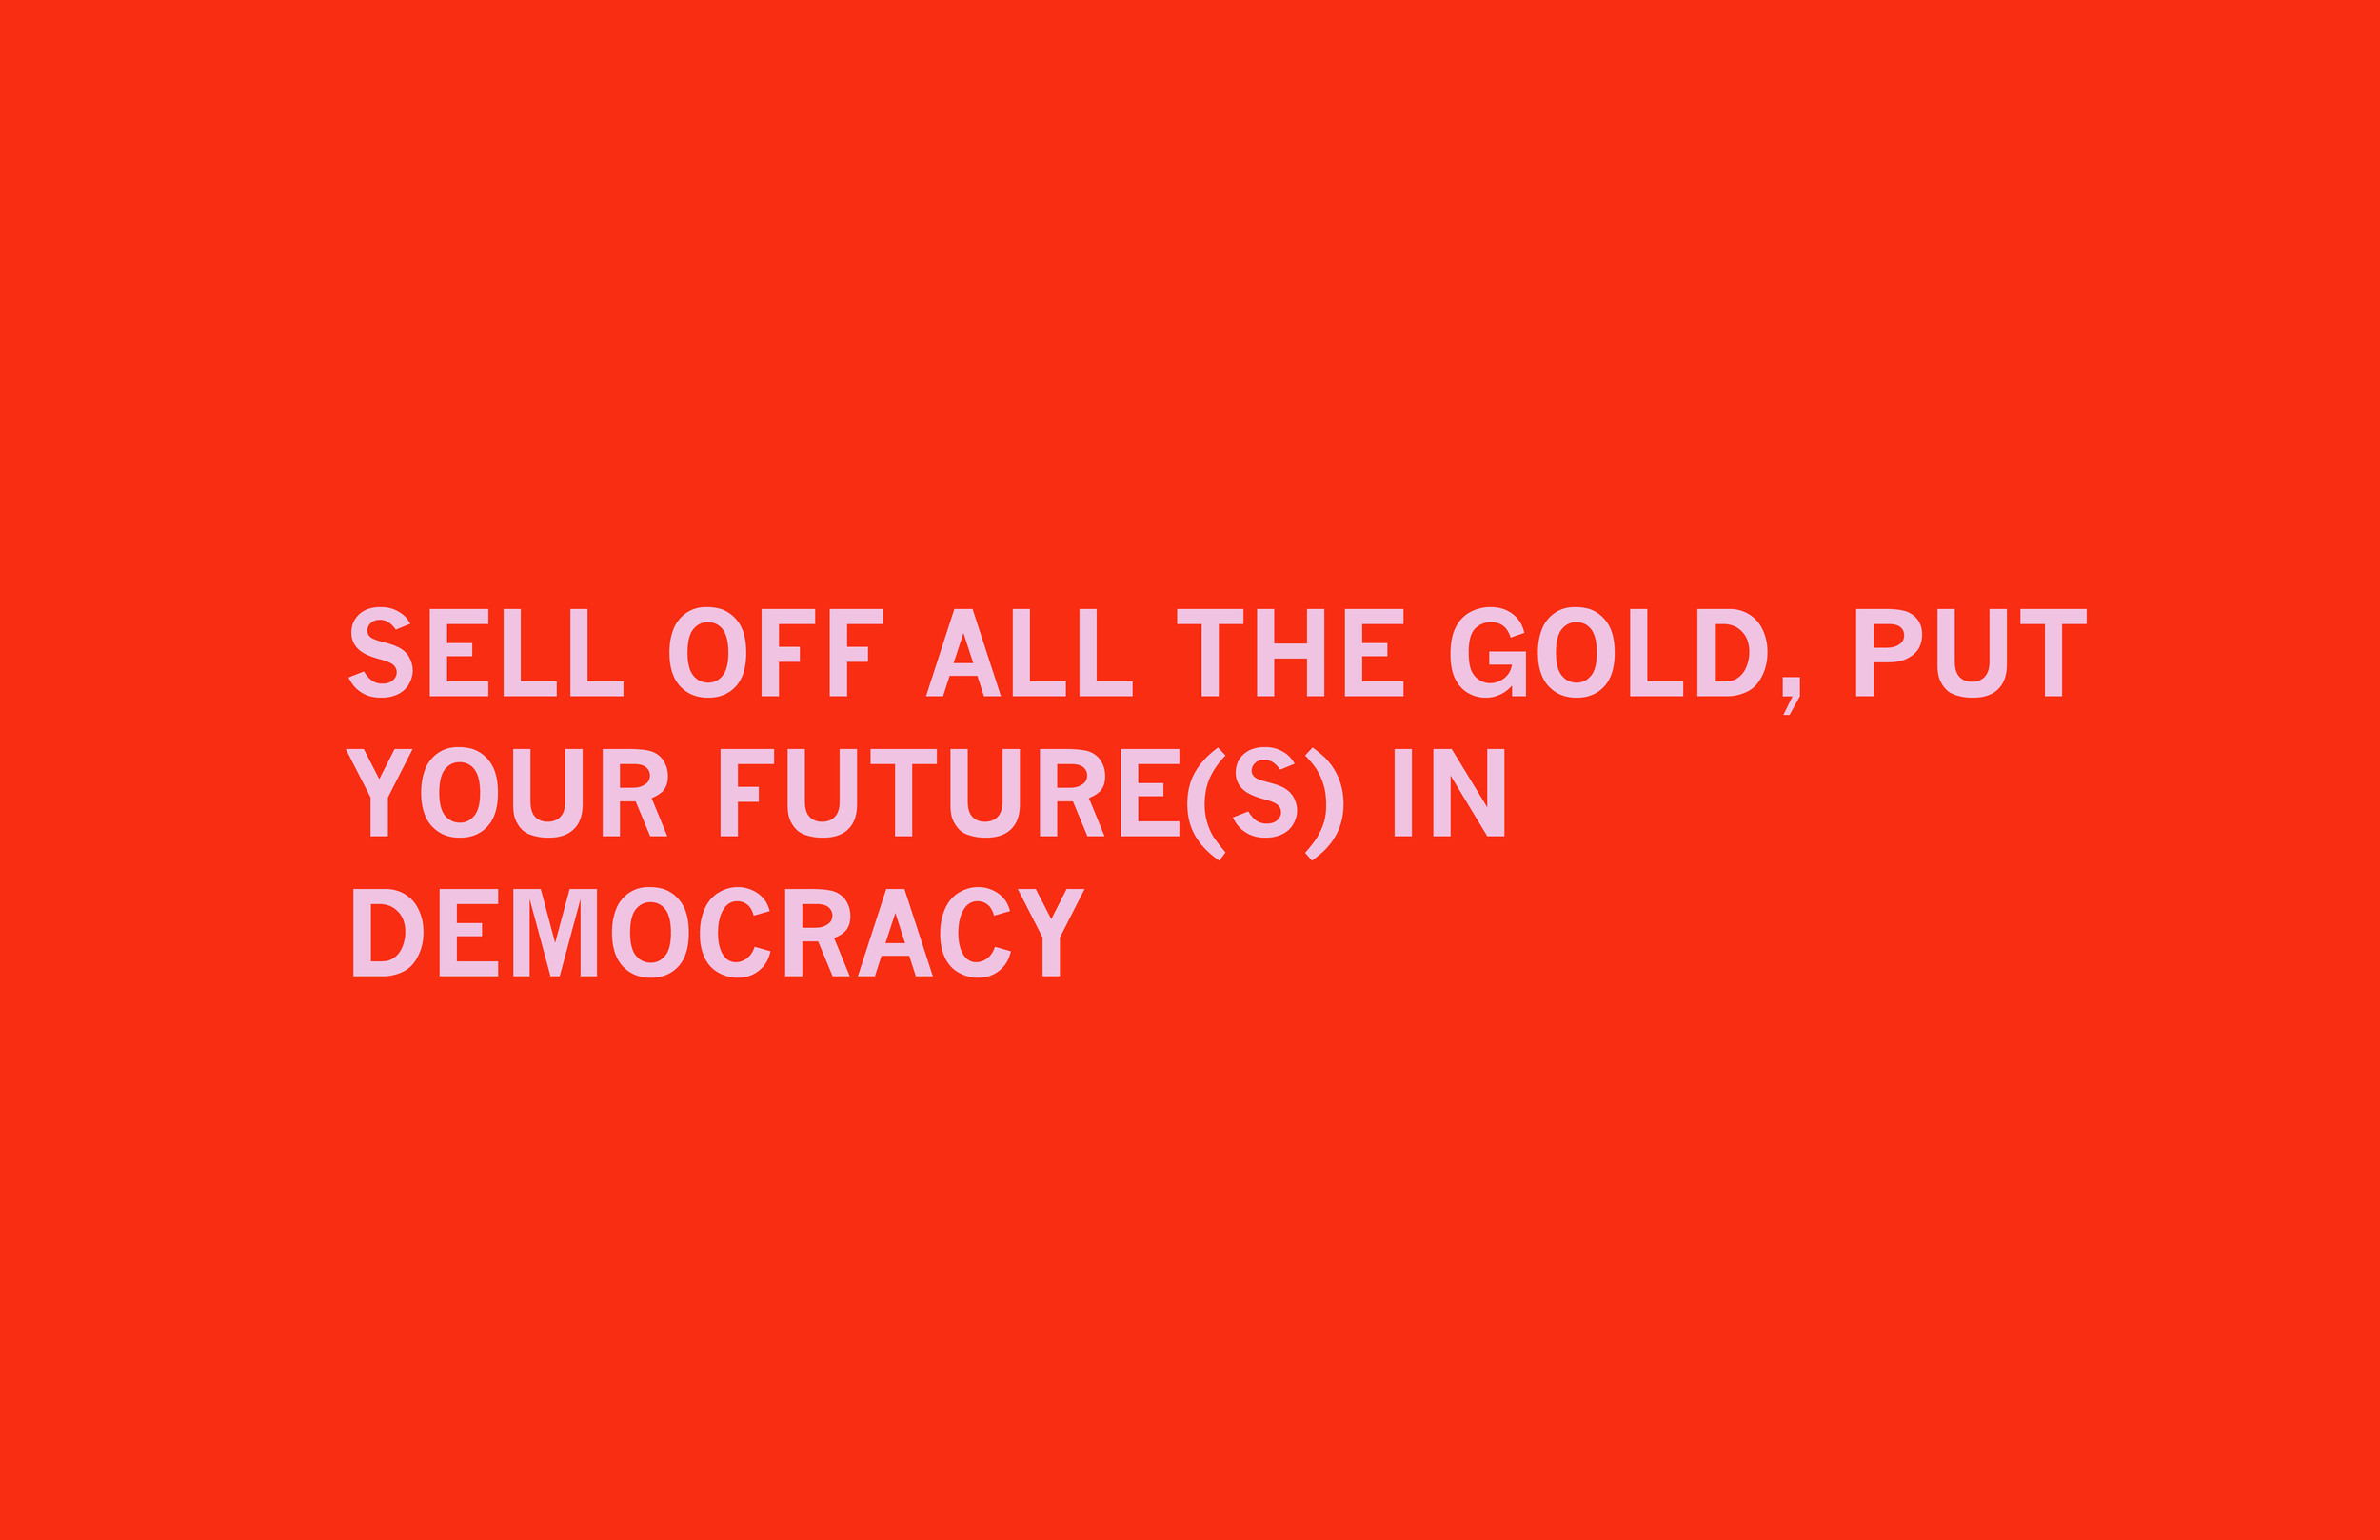 Democracy, v. 2  Archival inkjet print 19 x 26 inches 2011